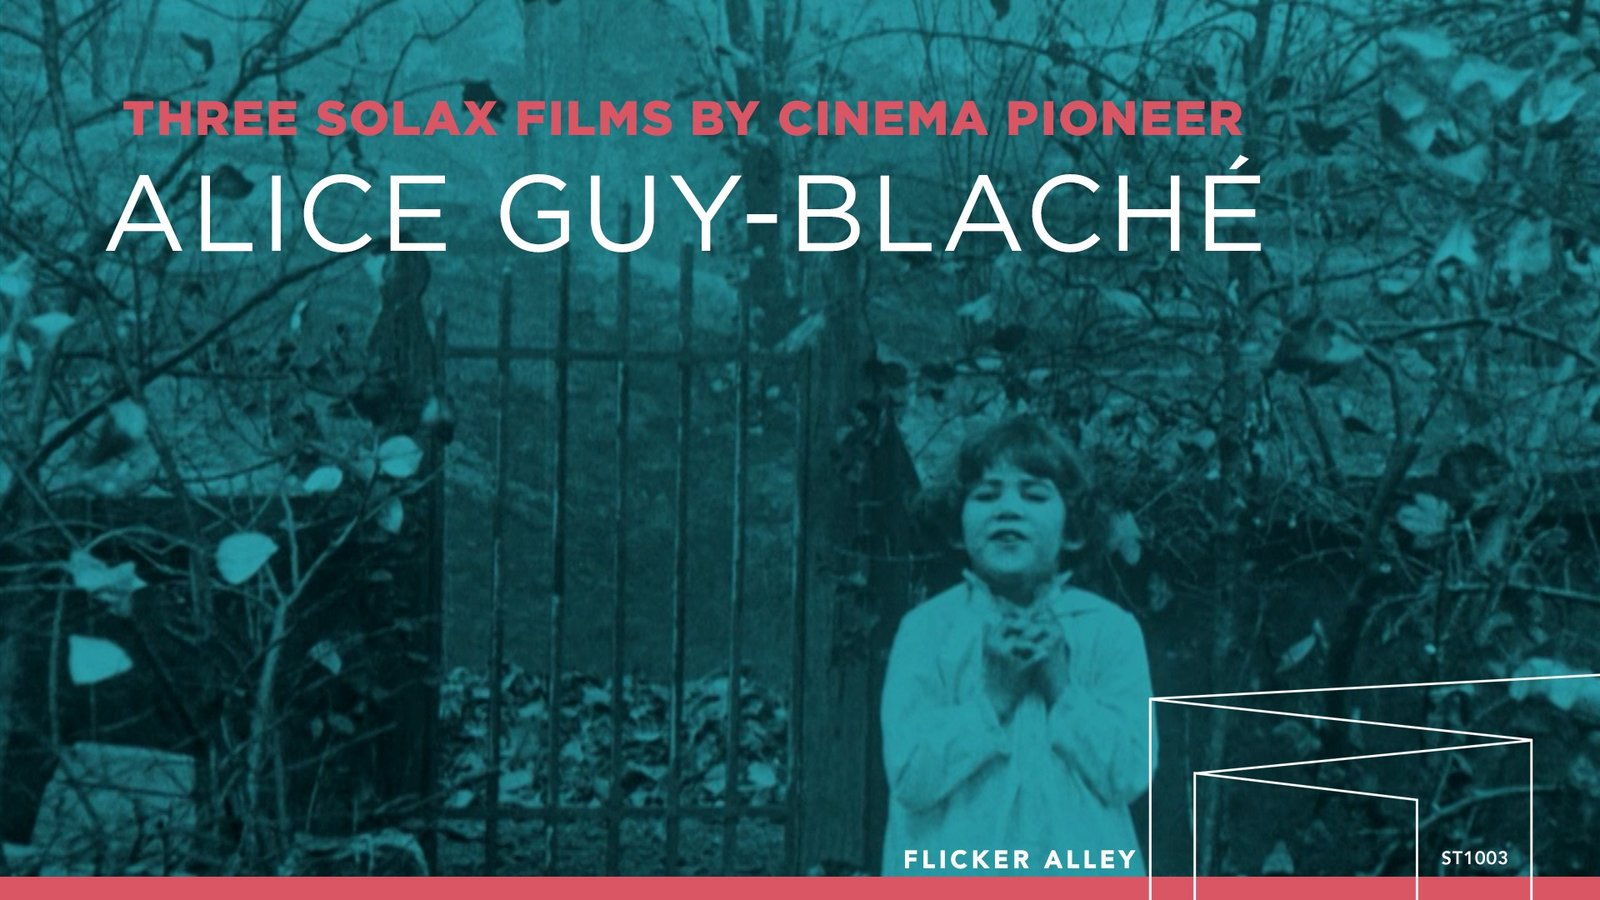 Three Films by Alice Guy Blaché (A House Divided, Canned Harmony, and Falling Leaves)